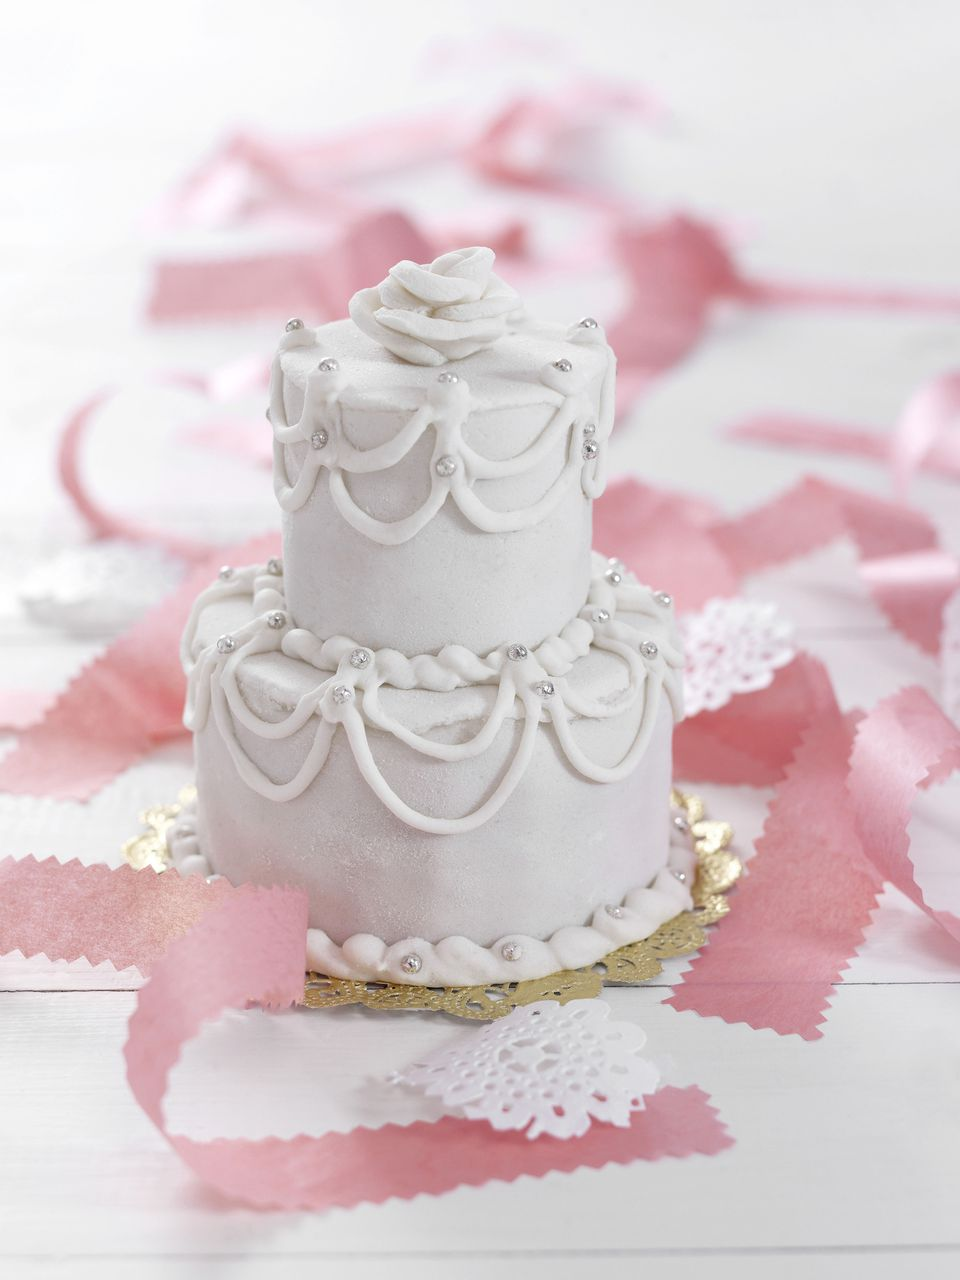 How to Make a Wedding Cake - a Beginner\'s Guide